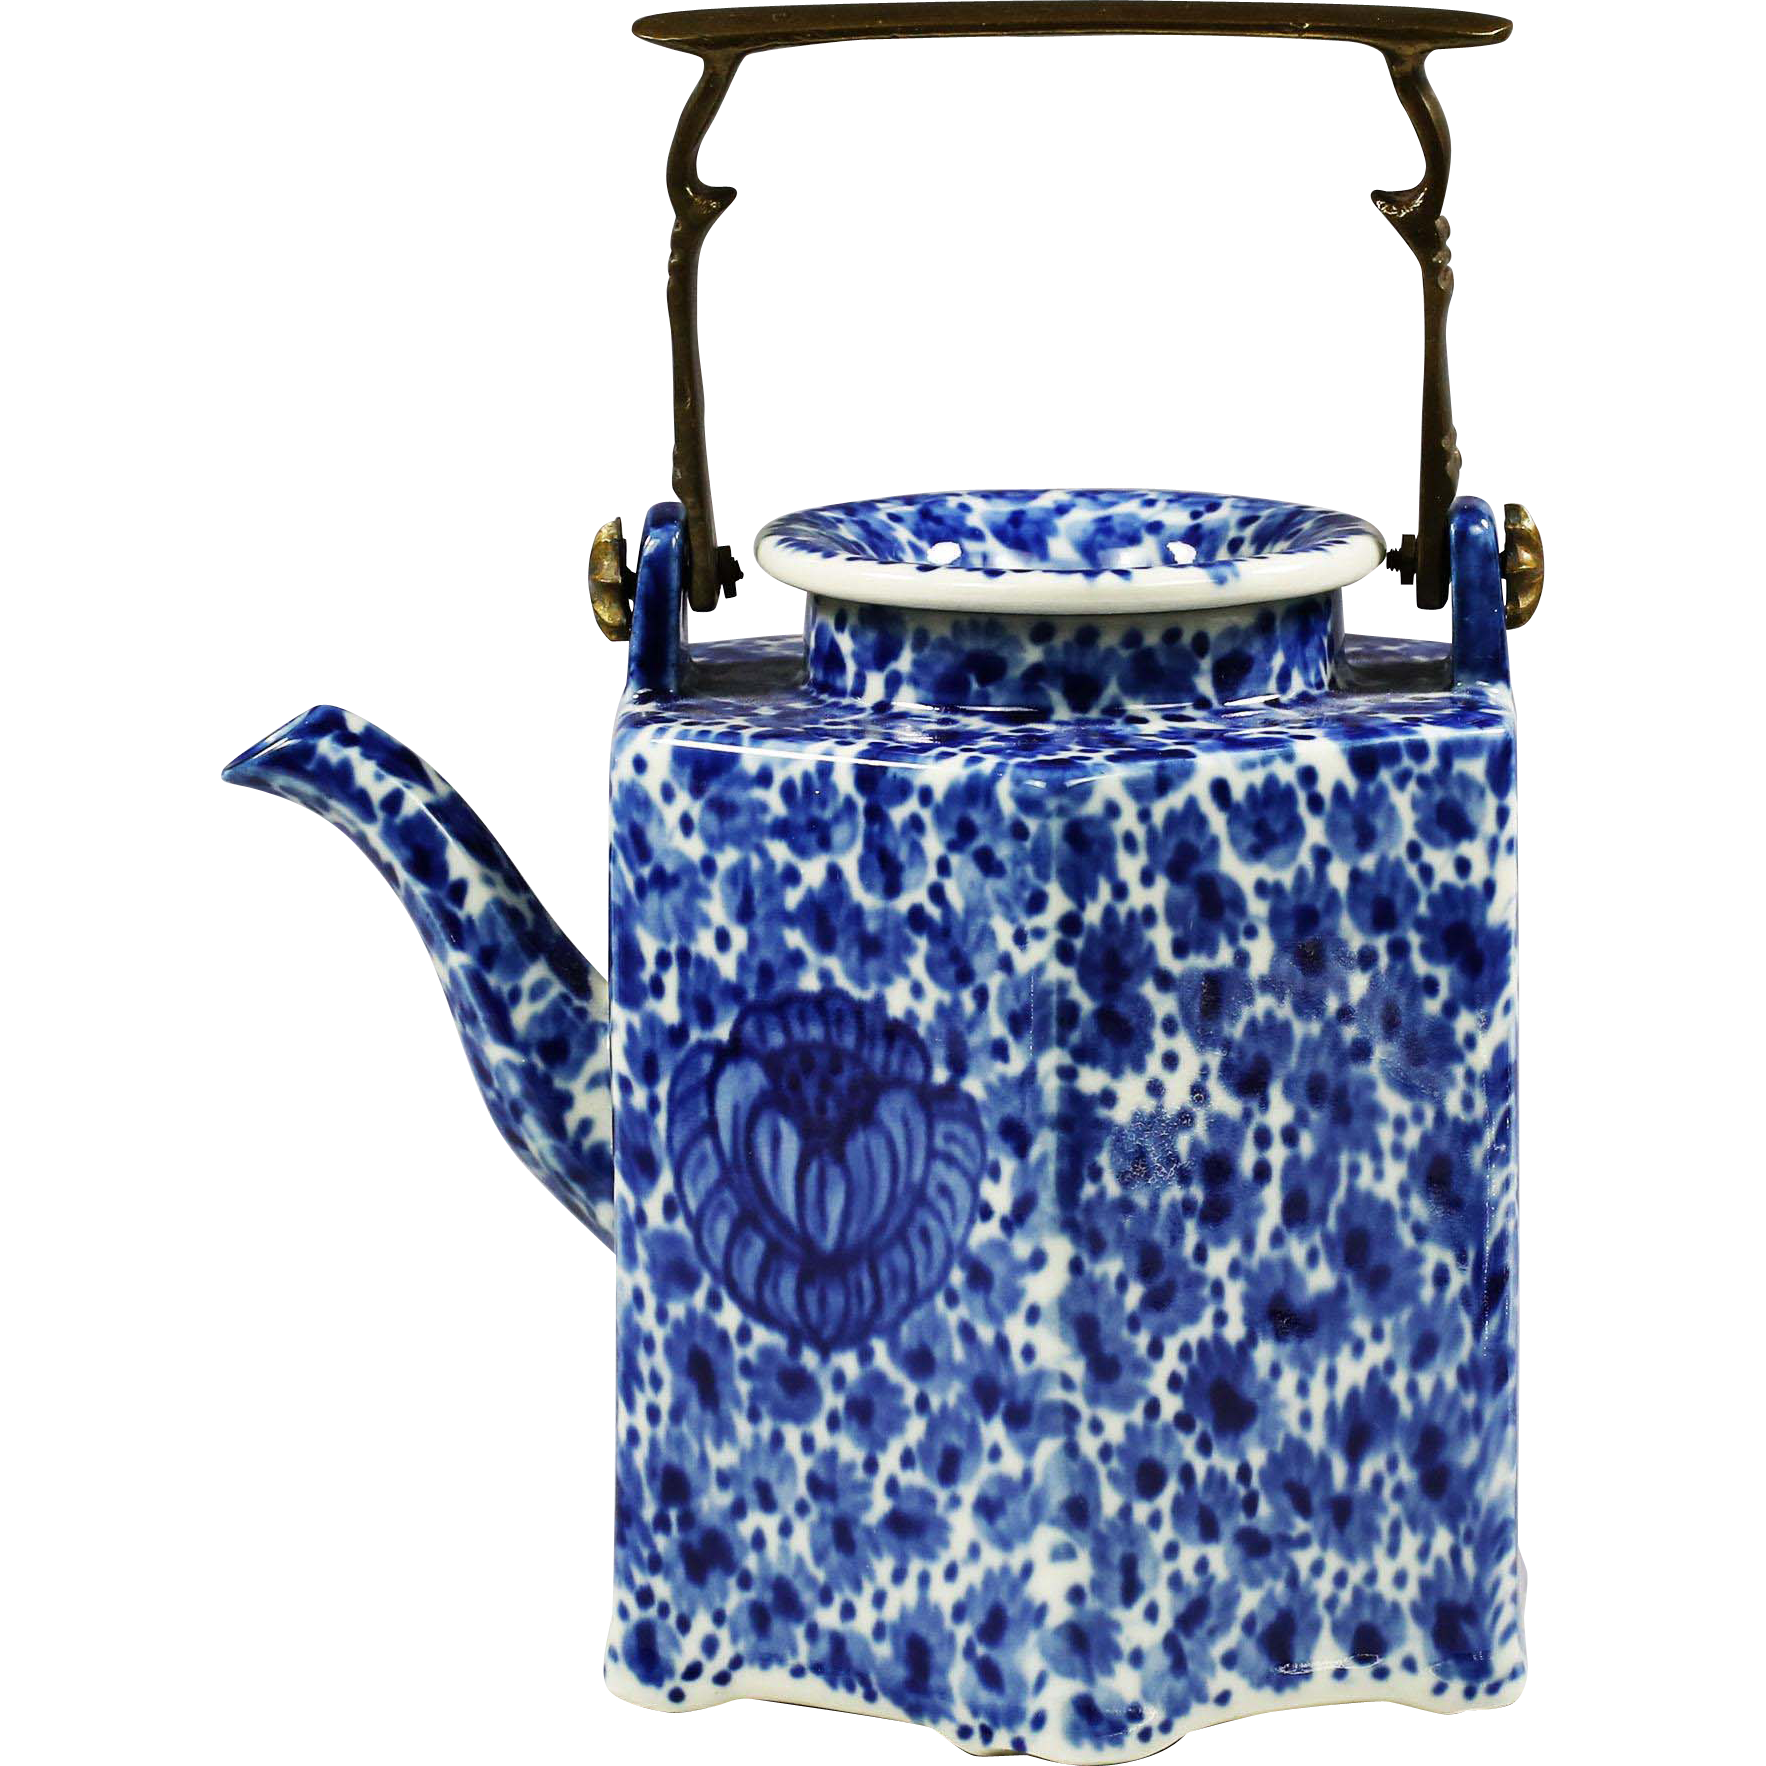 Antique British Flow Blue Teapot 19th century Coffee Pot with bronze handle --found at www.rubylane.com #vintagebeginshere